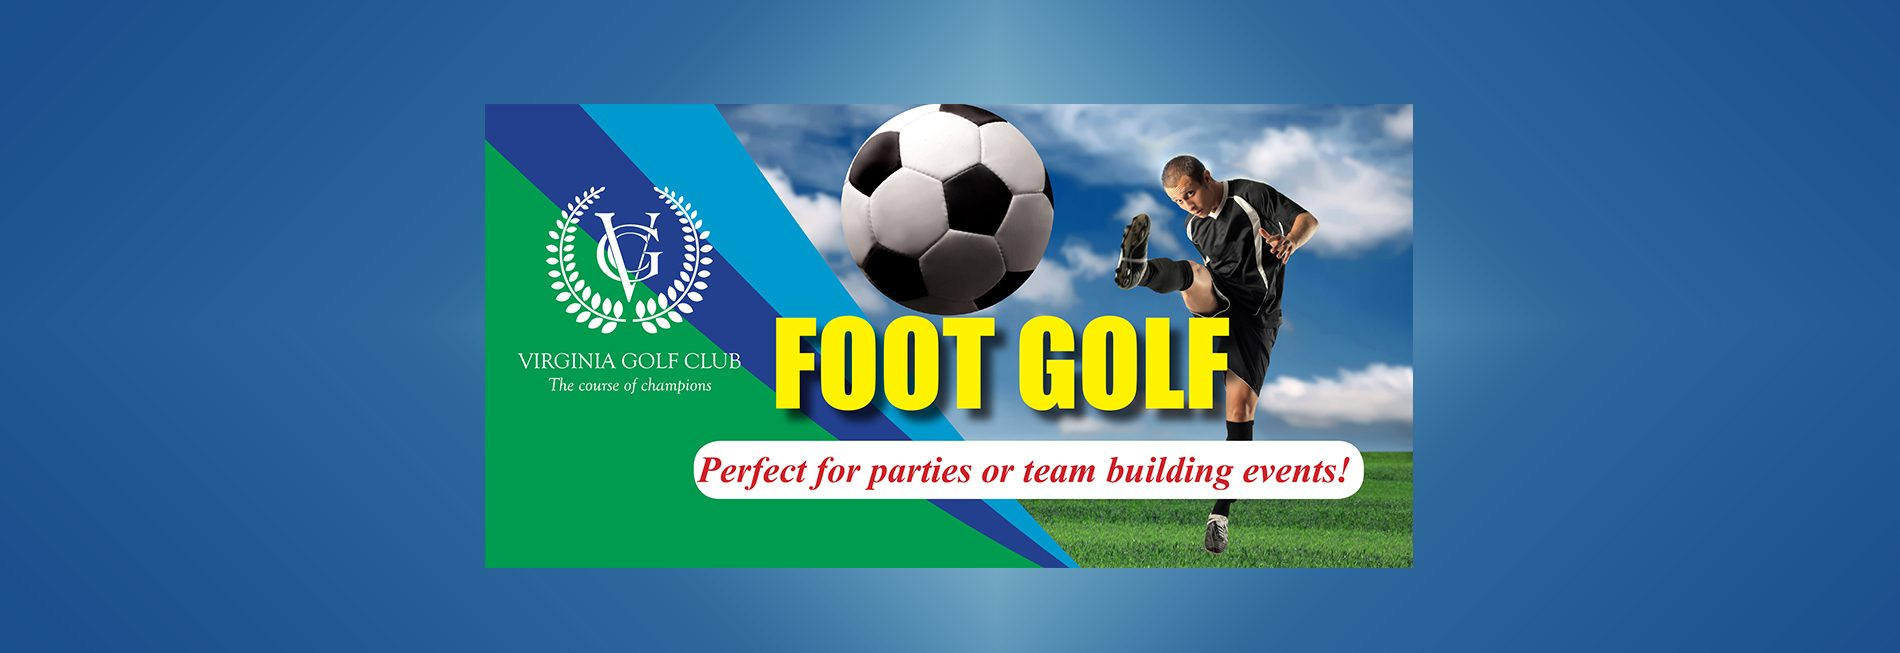 Footgolf slider parties team building